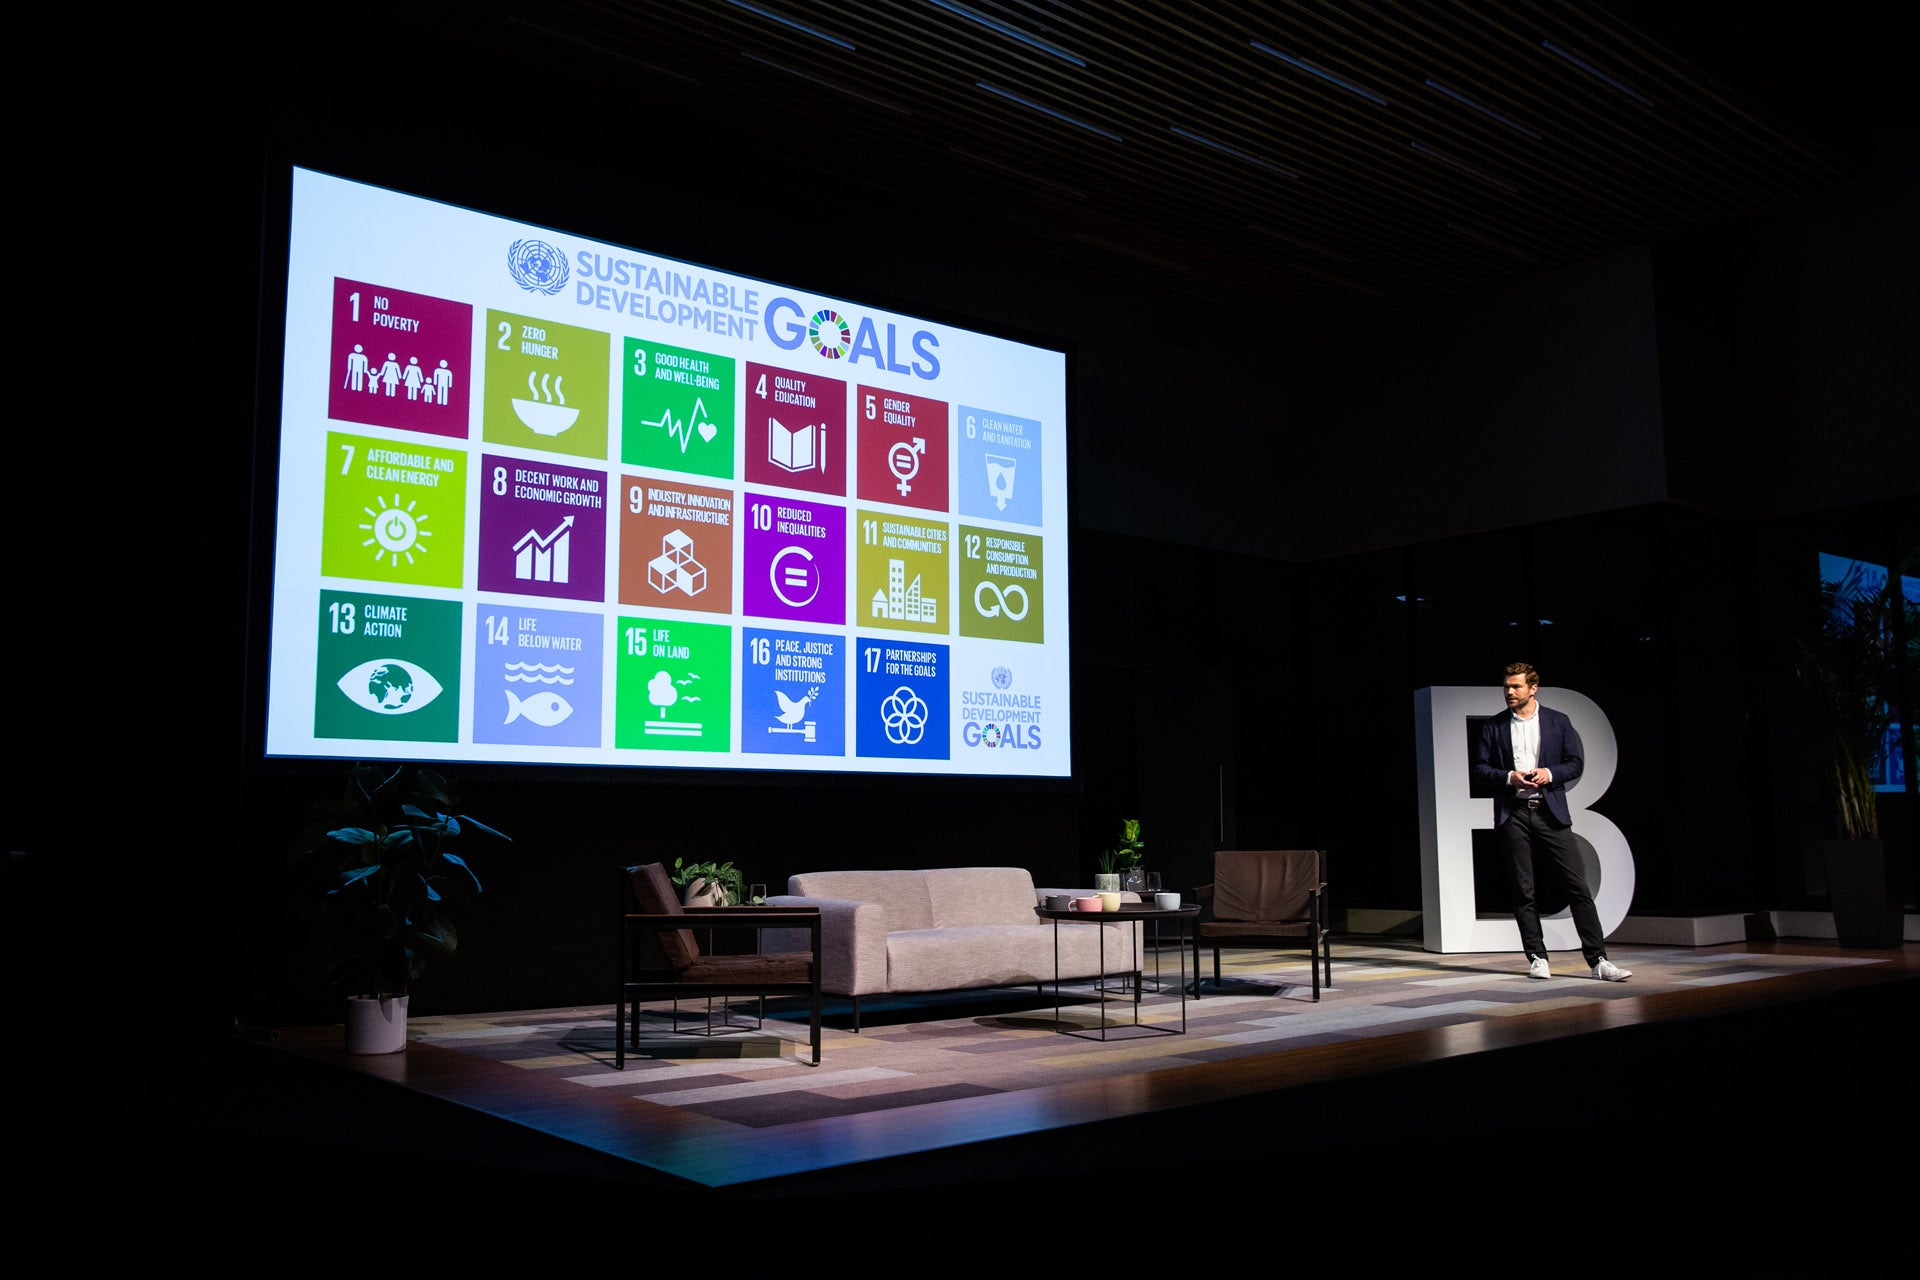 Sustainability goals at the London B Inspired event